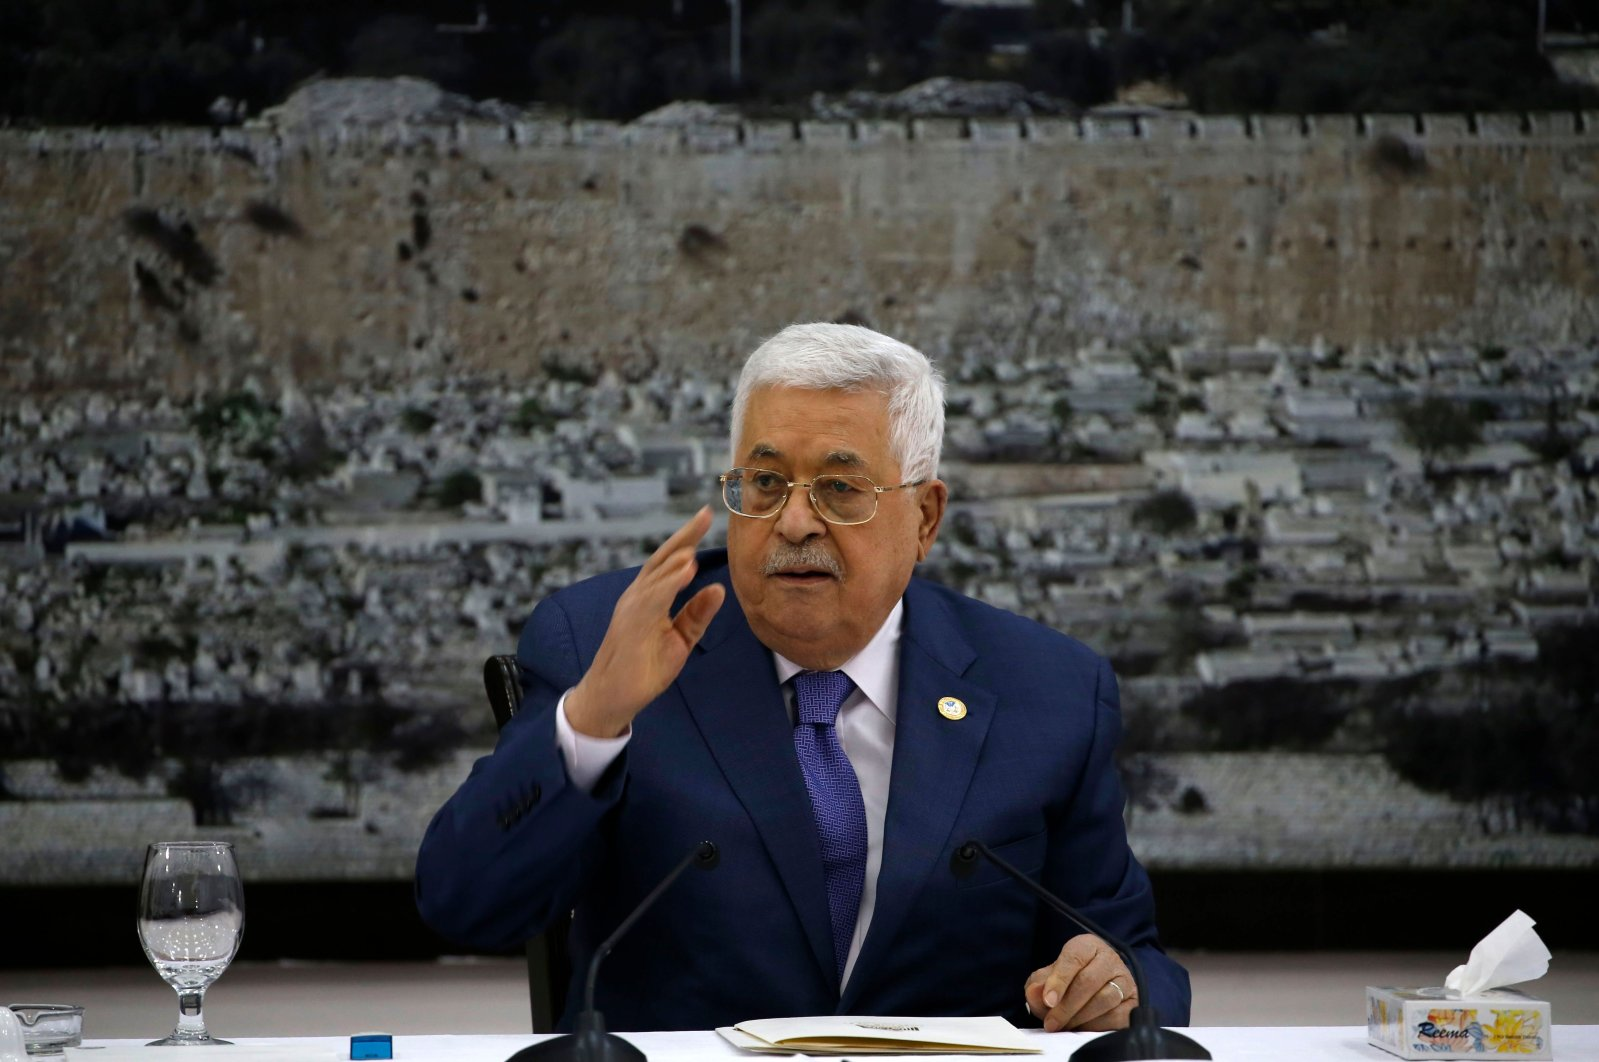 Palestinian President Mahmoud Abbas attends a meeting with the Palestinian leadership at the presidential compound in the West Bank city of Ramallah, Palestine, July 25, 2109. (AFP Photo)